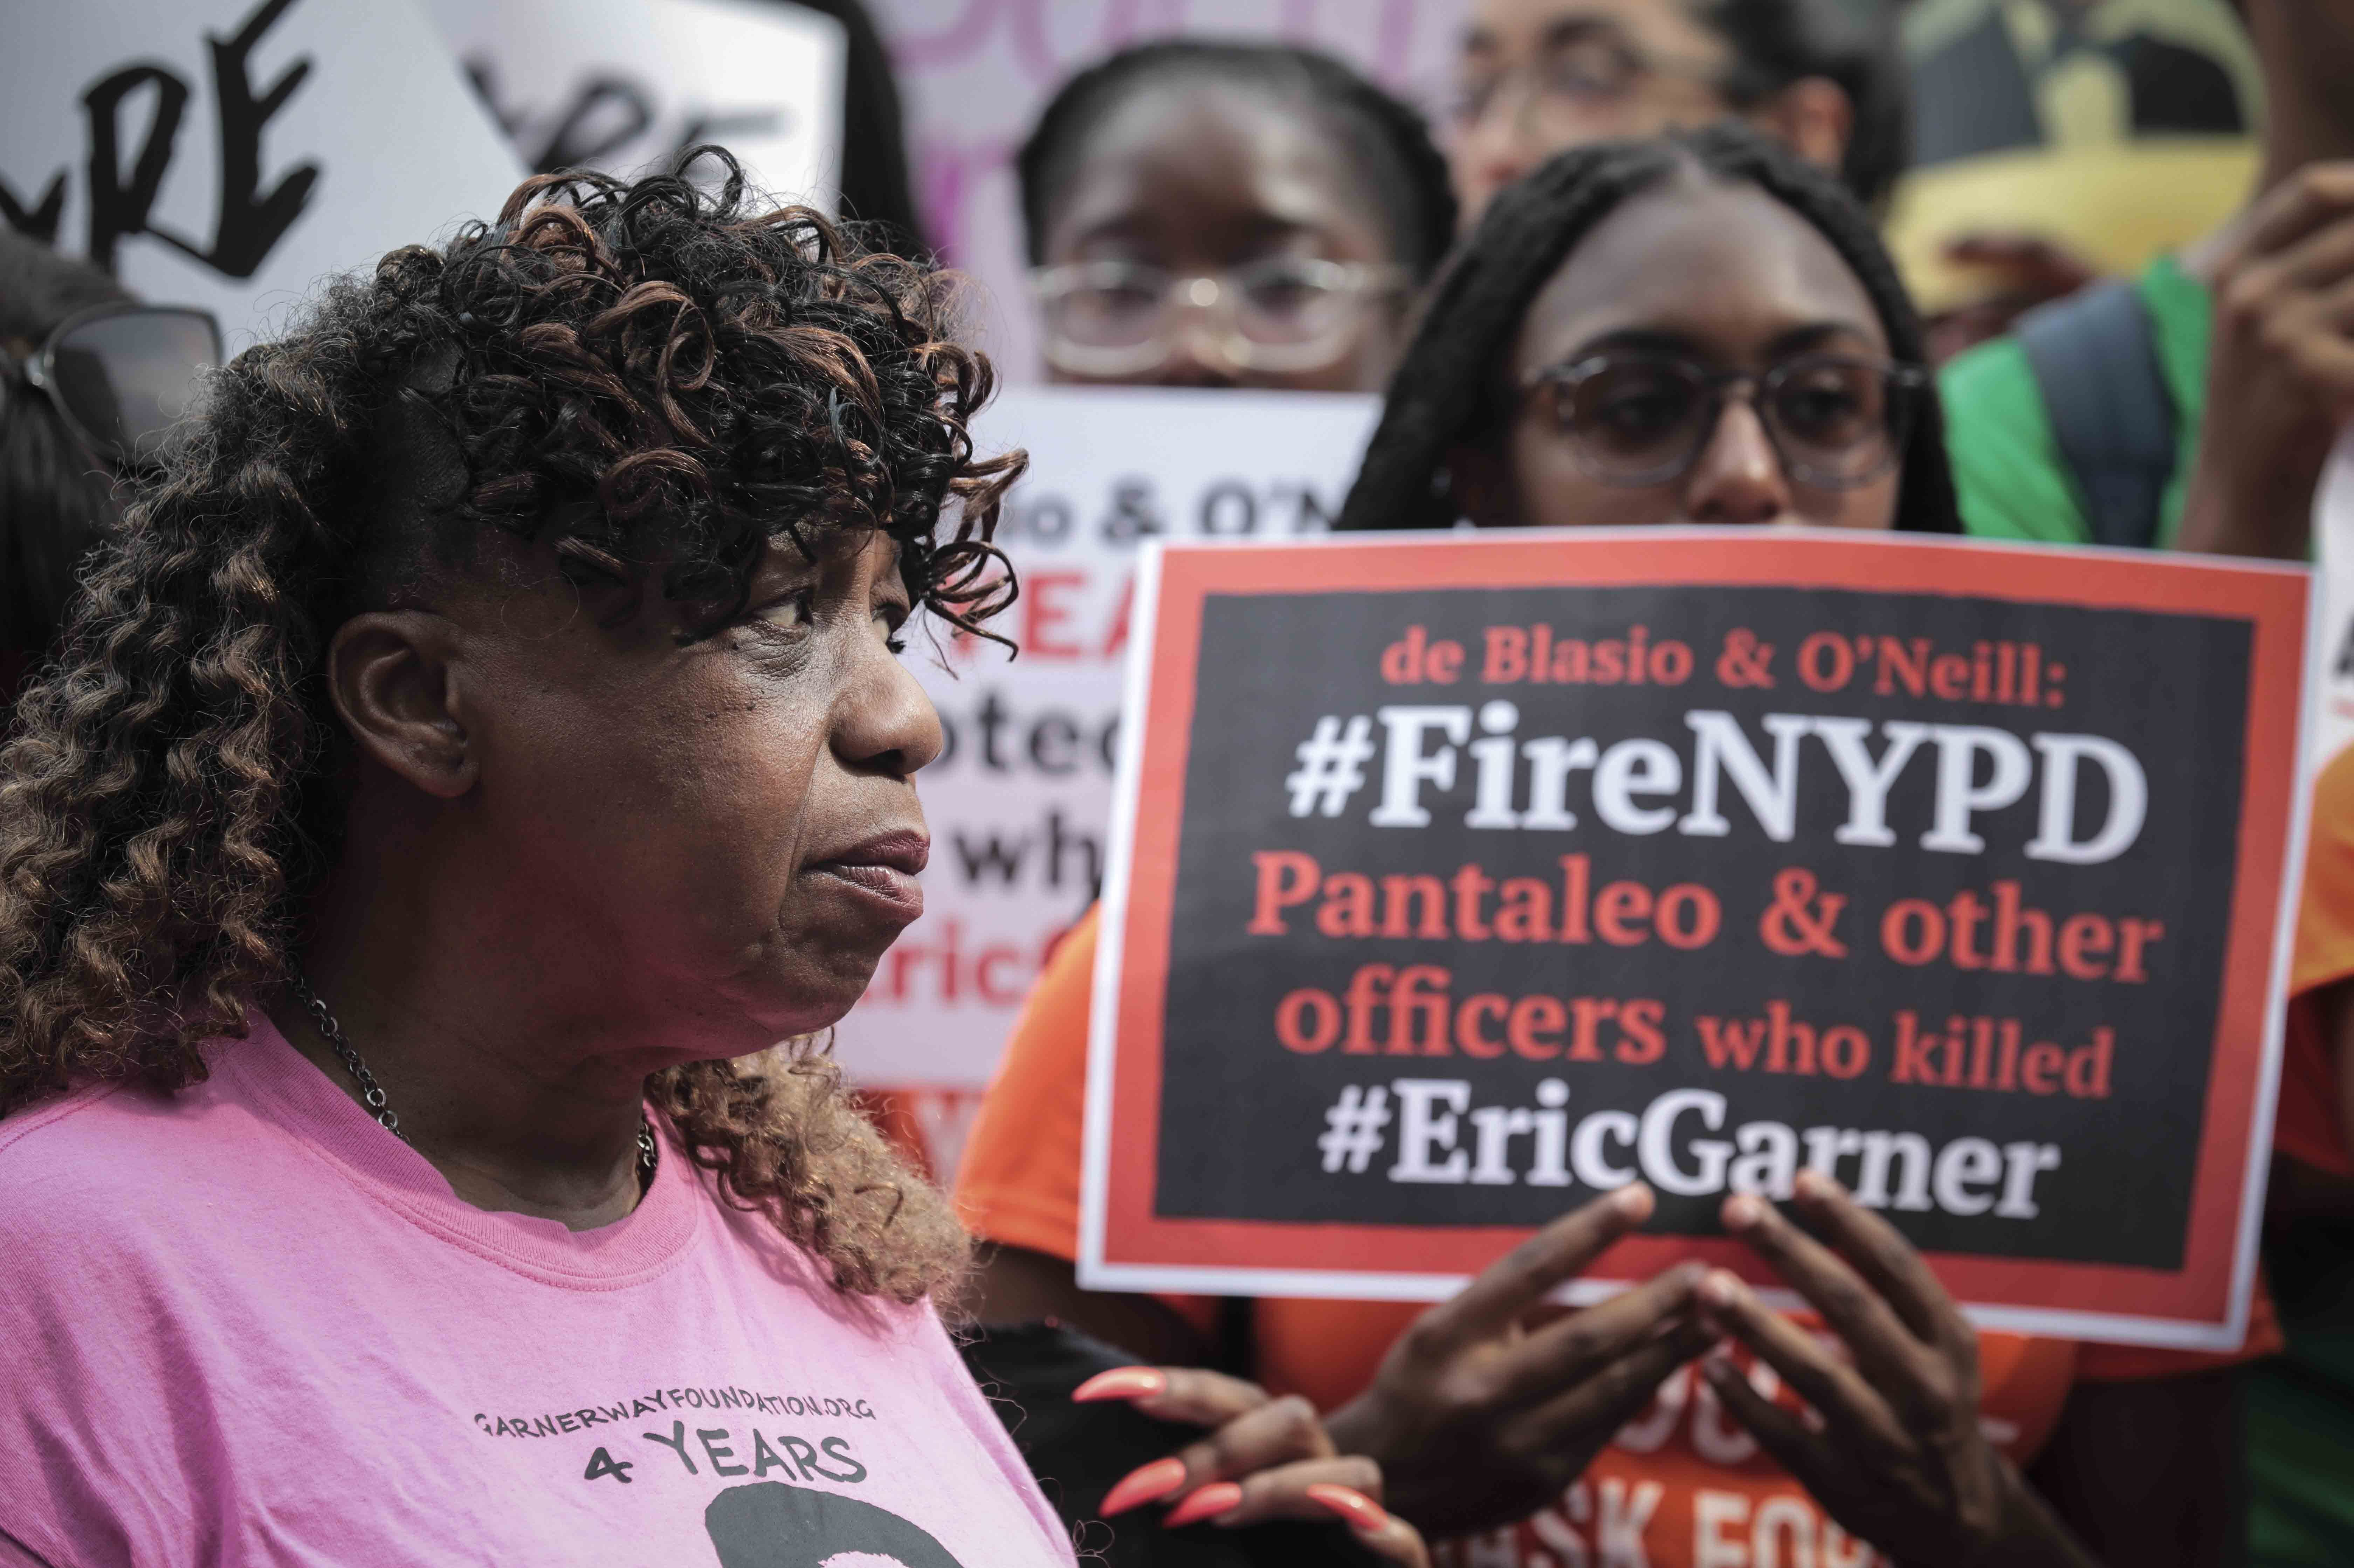 NYPD Fires Daniel Pantaleo, Who Used Banned Chokehold On Eric Garner Before His Death